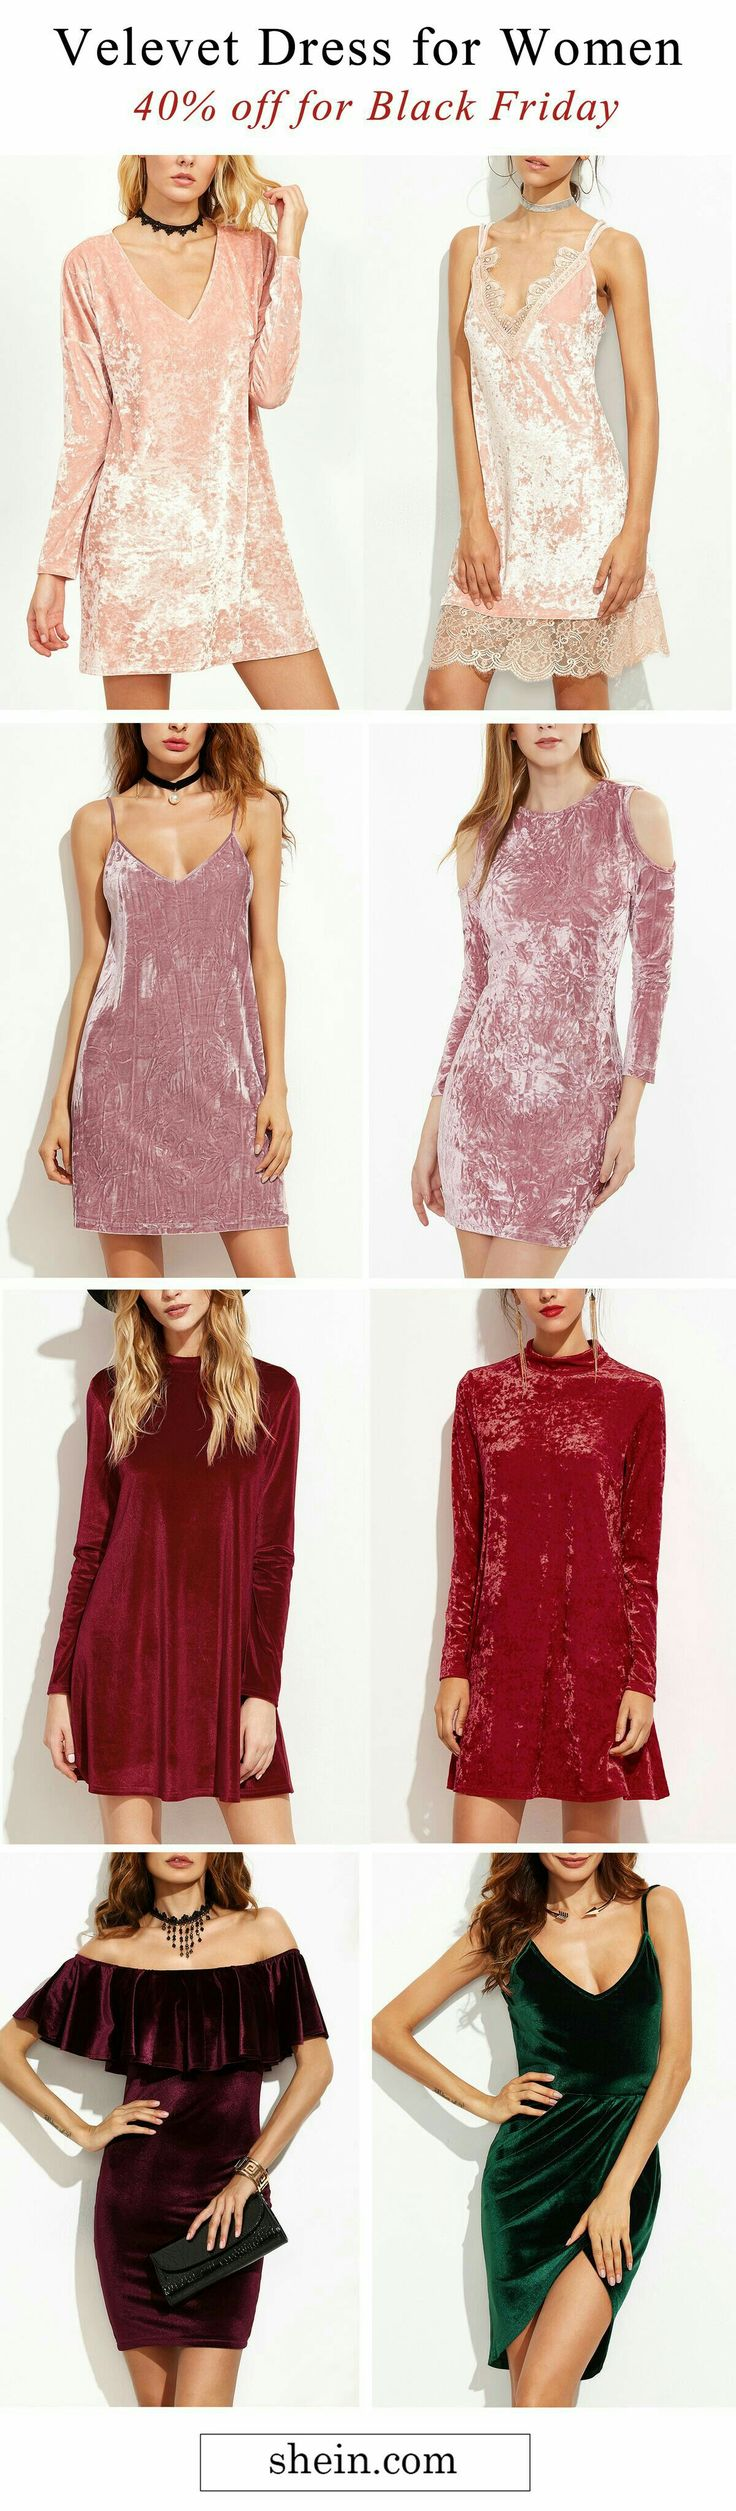 Velvet dresses for woman